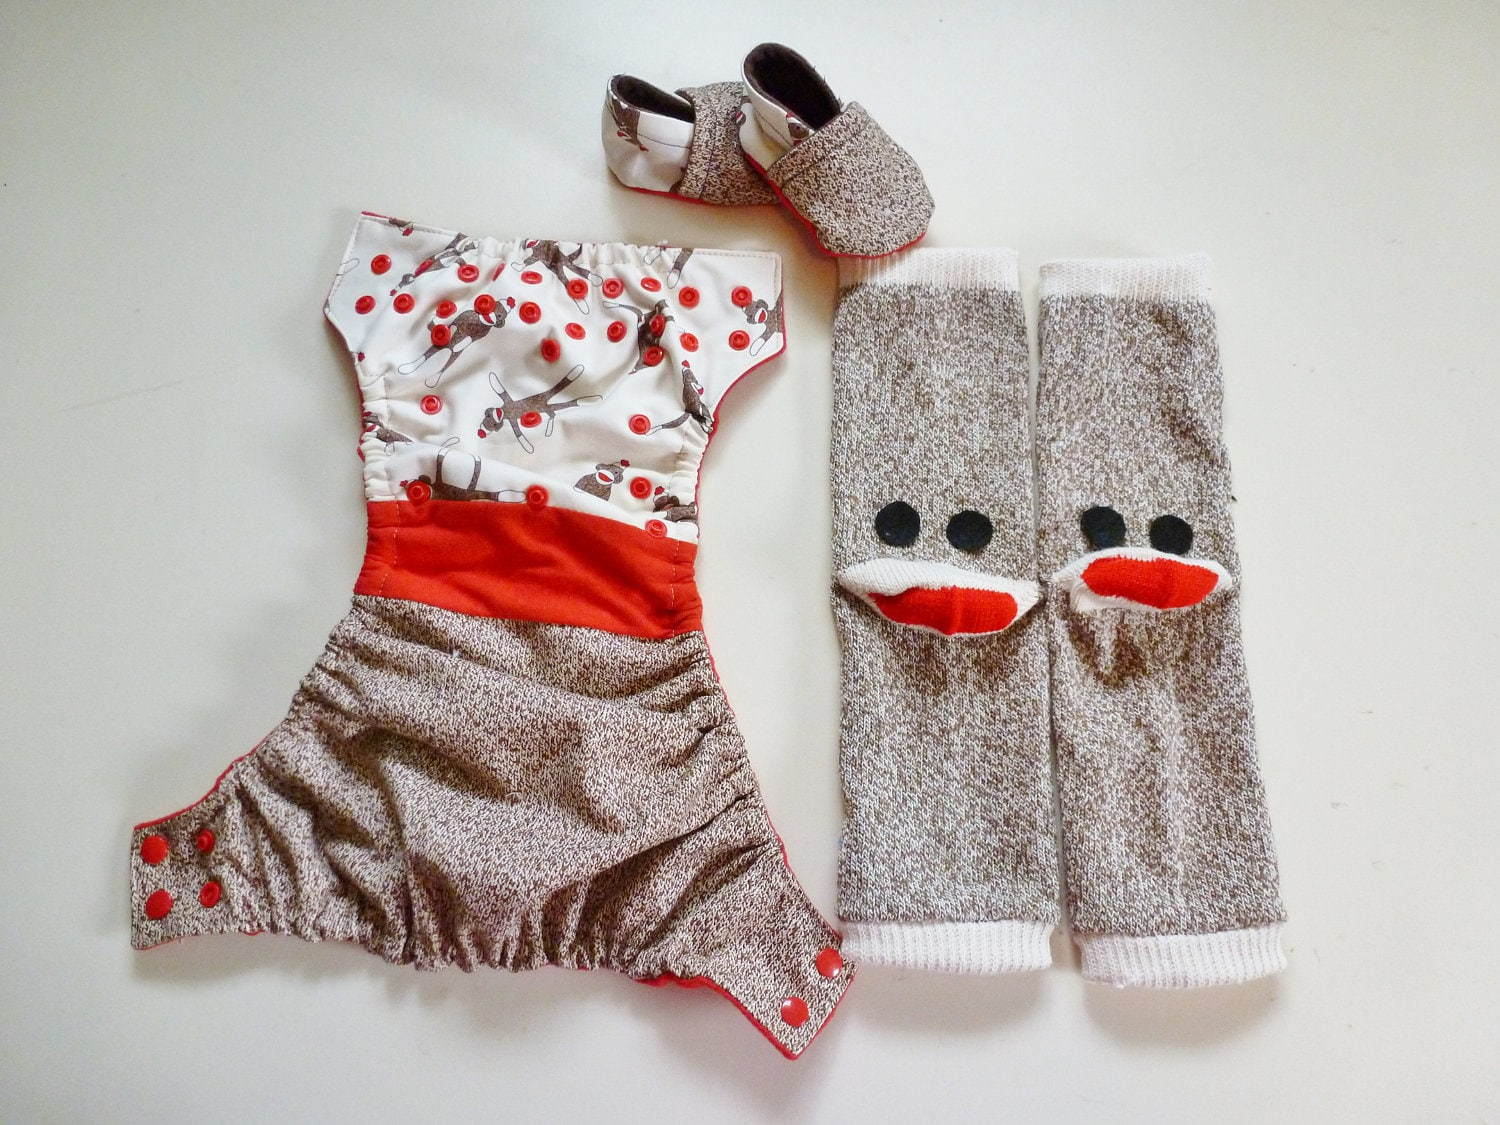 Sock Monkey One Size Pocket Diaper, Leg Warmers and Soft Soled Shoes Gift Set